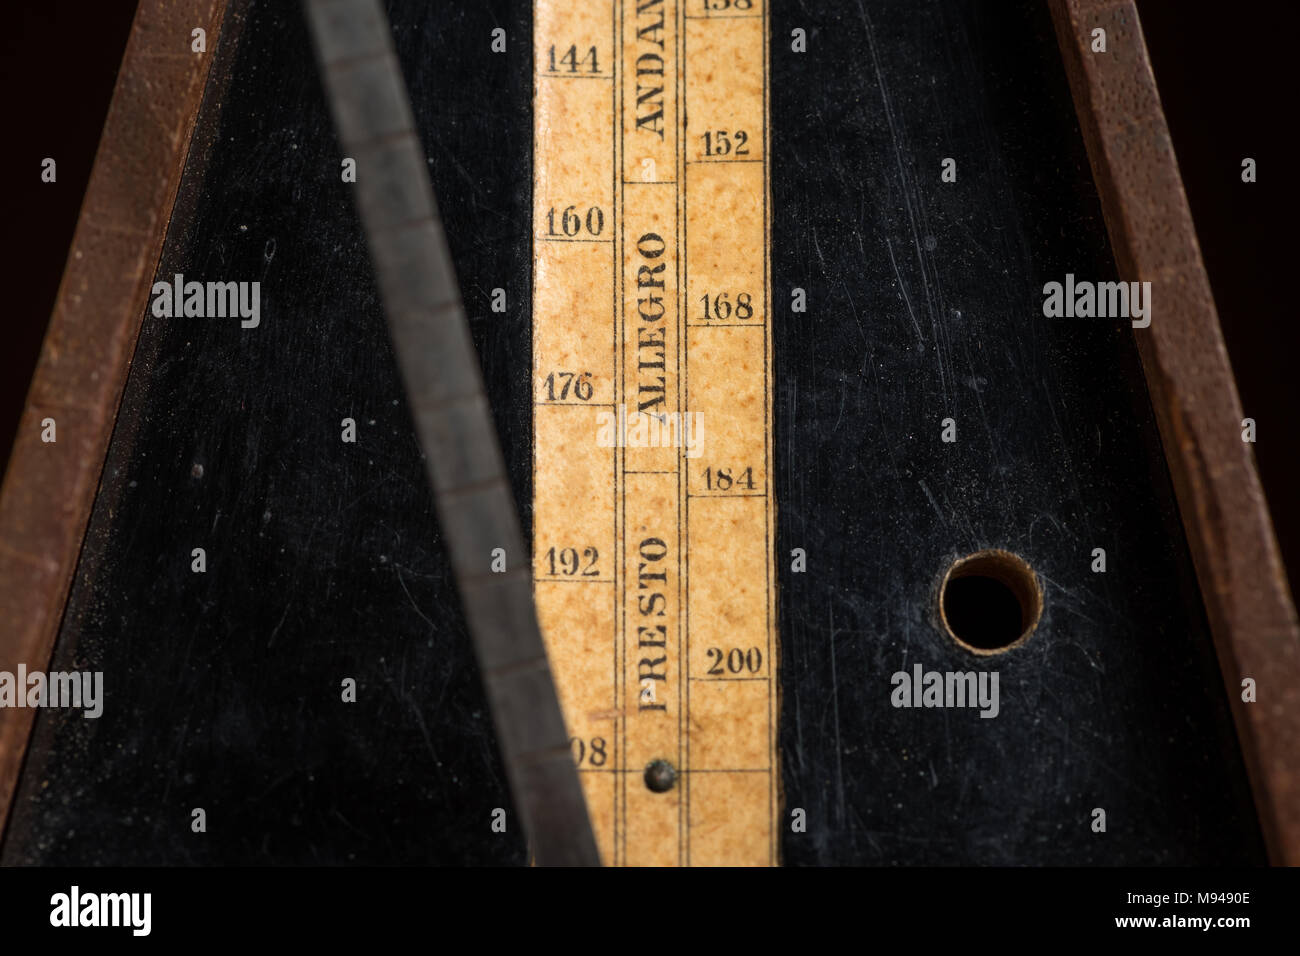 Detail of an old mechanic musical metronome, scale showing the various tempos - Stock Image